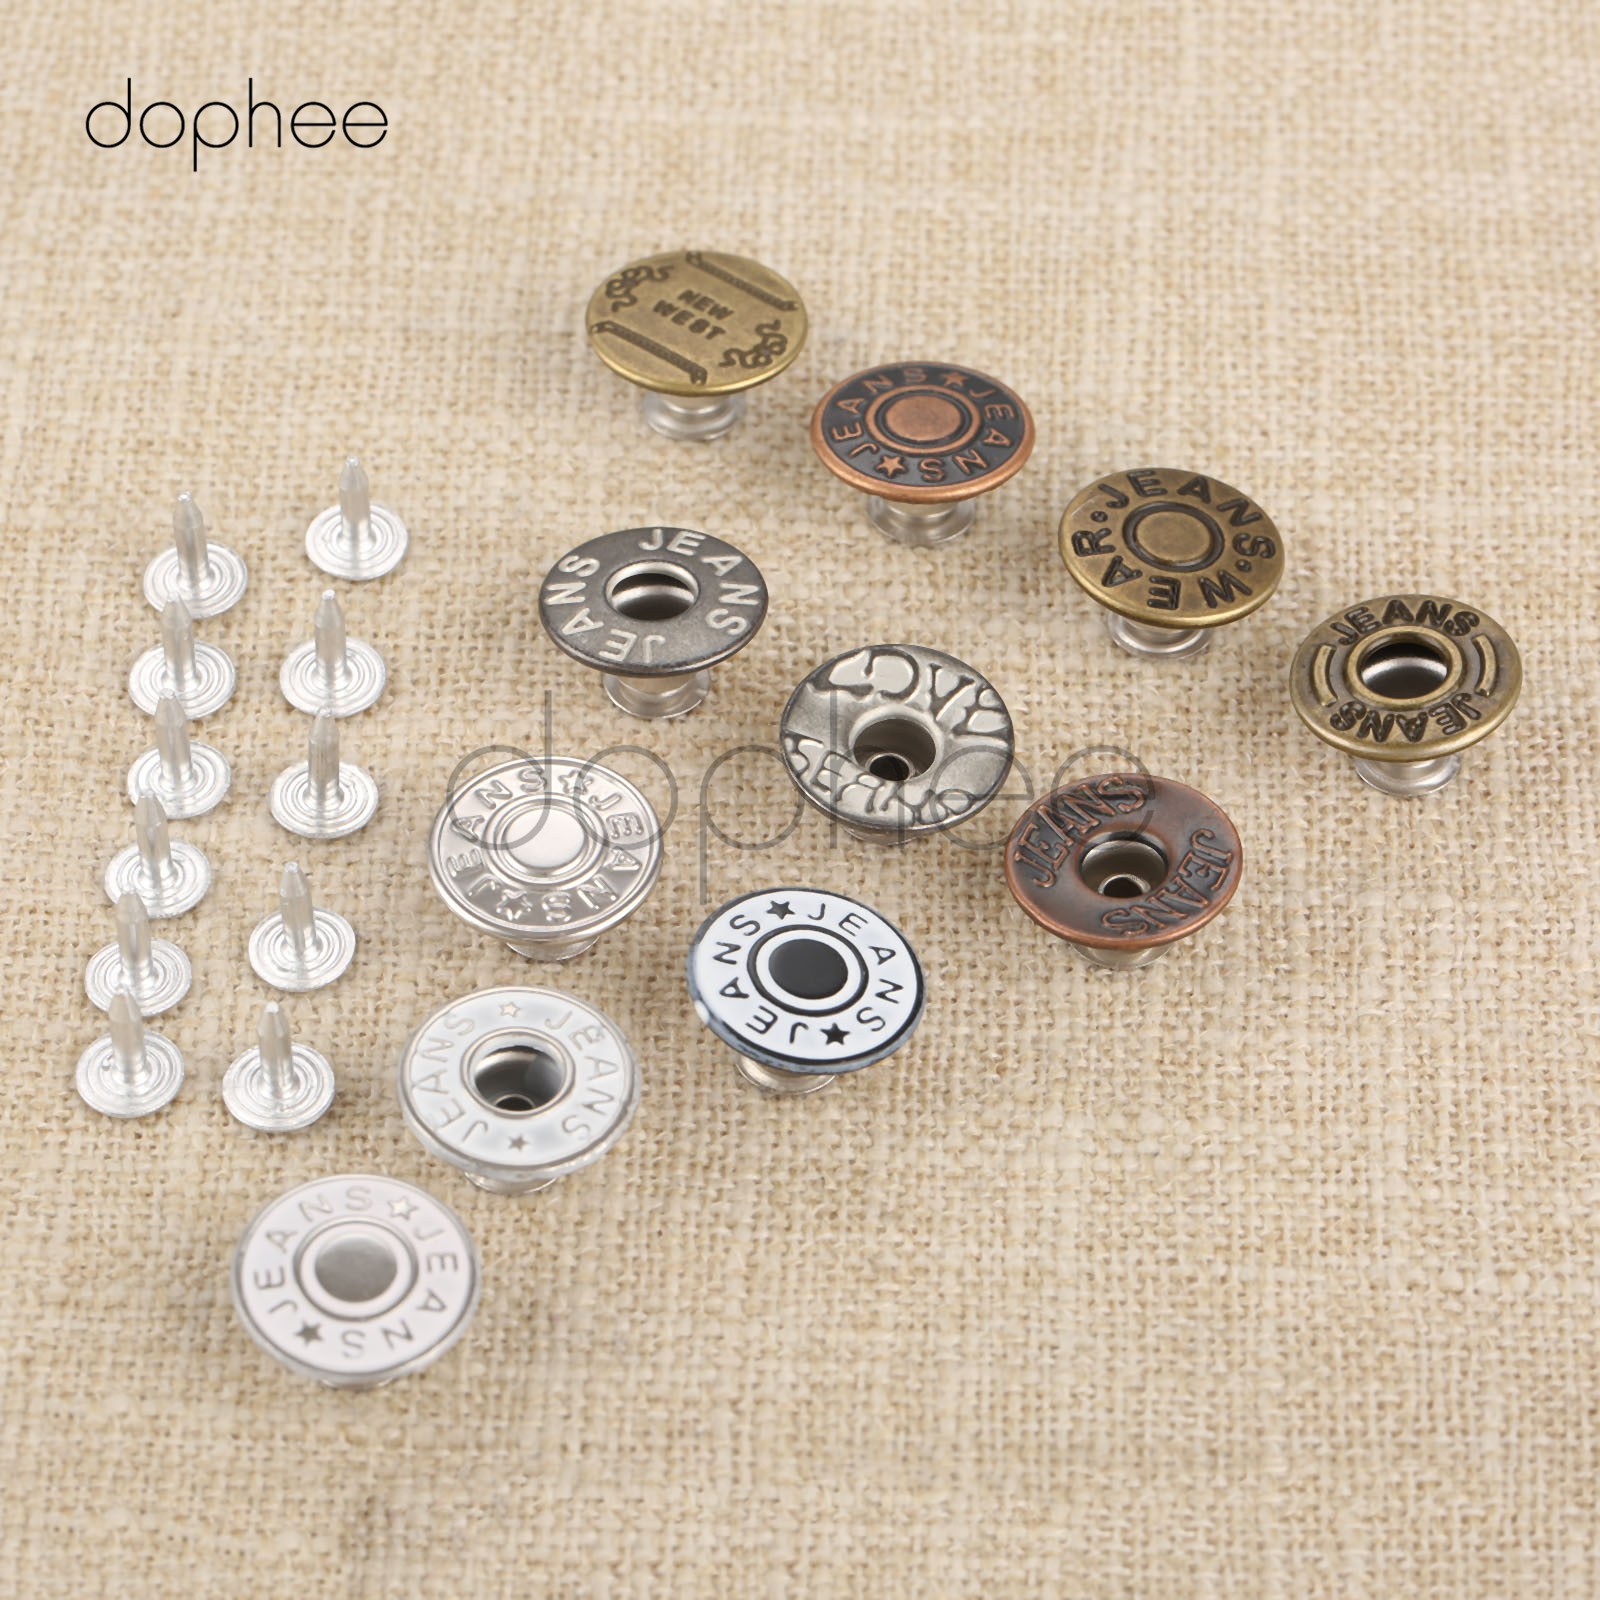 50 Nails For Jeans Fasterners 50Pcs 17mm 20mm Silver Jeans Buttons DIY Shank